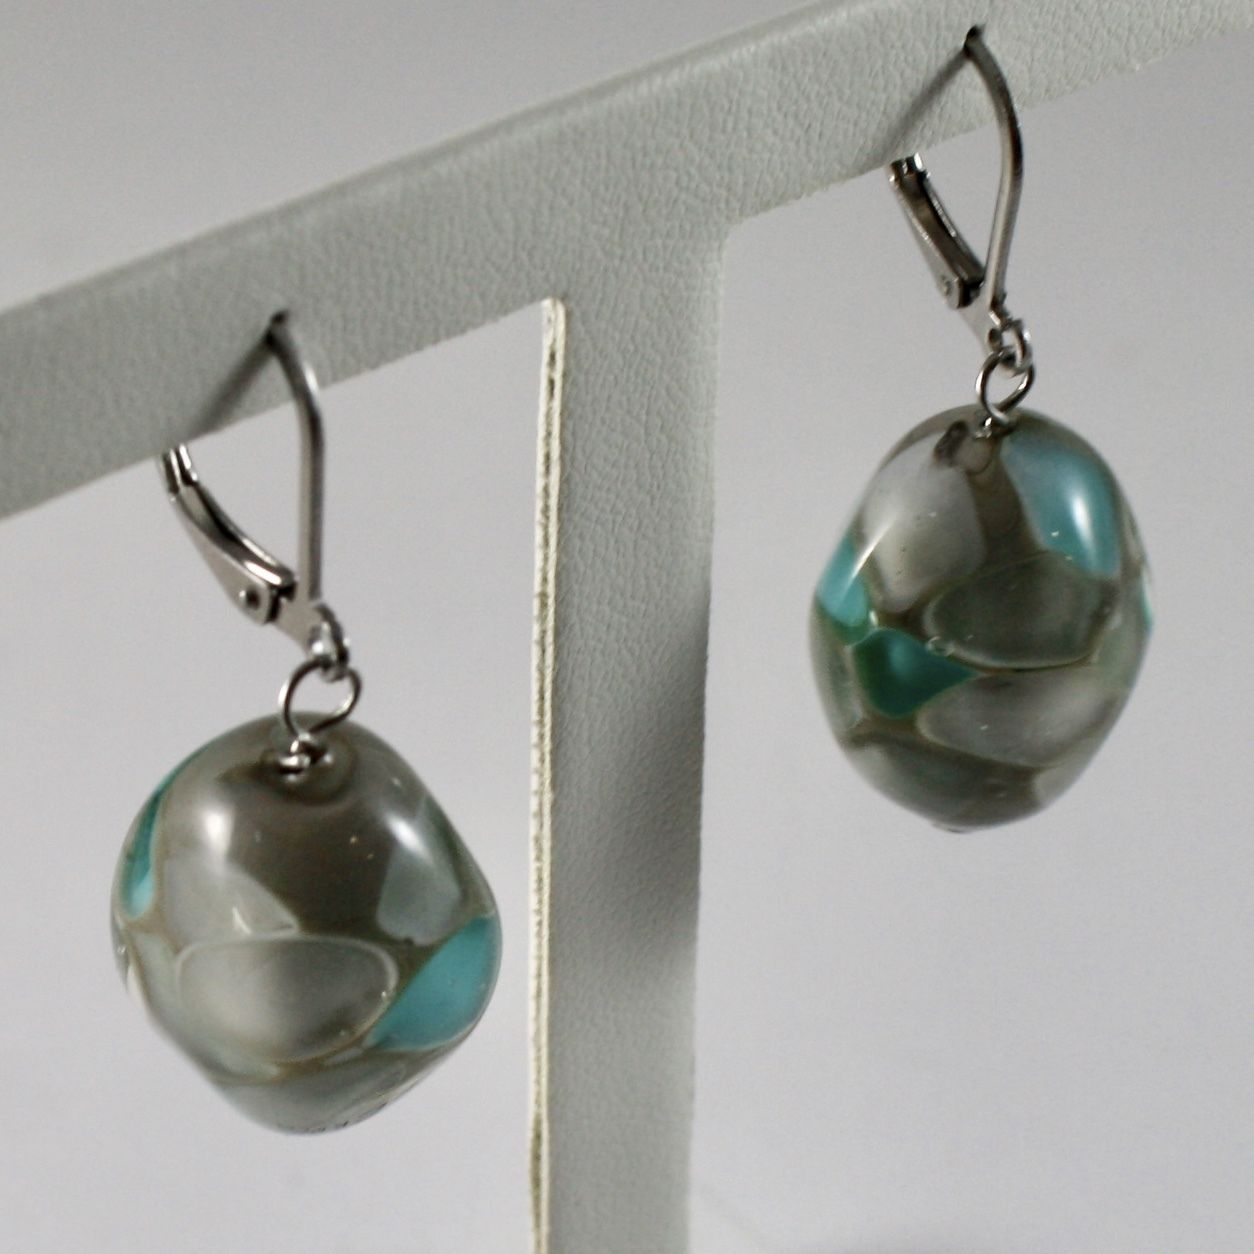 ANTICA MURRINA VENEZIA COLLECTION EARRINGS WITH MURANO GLASS BEADS, GREEN GRAY